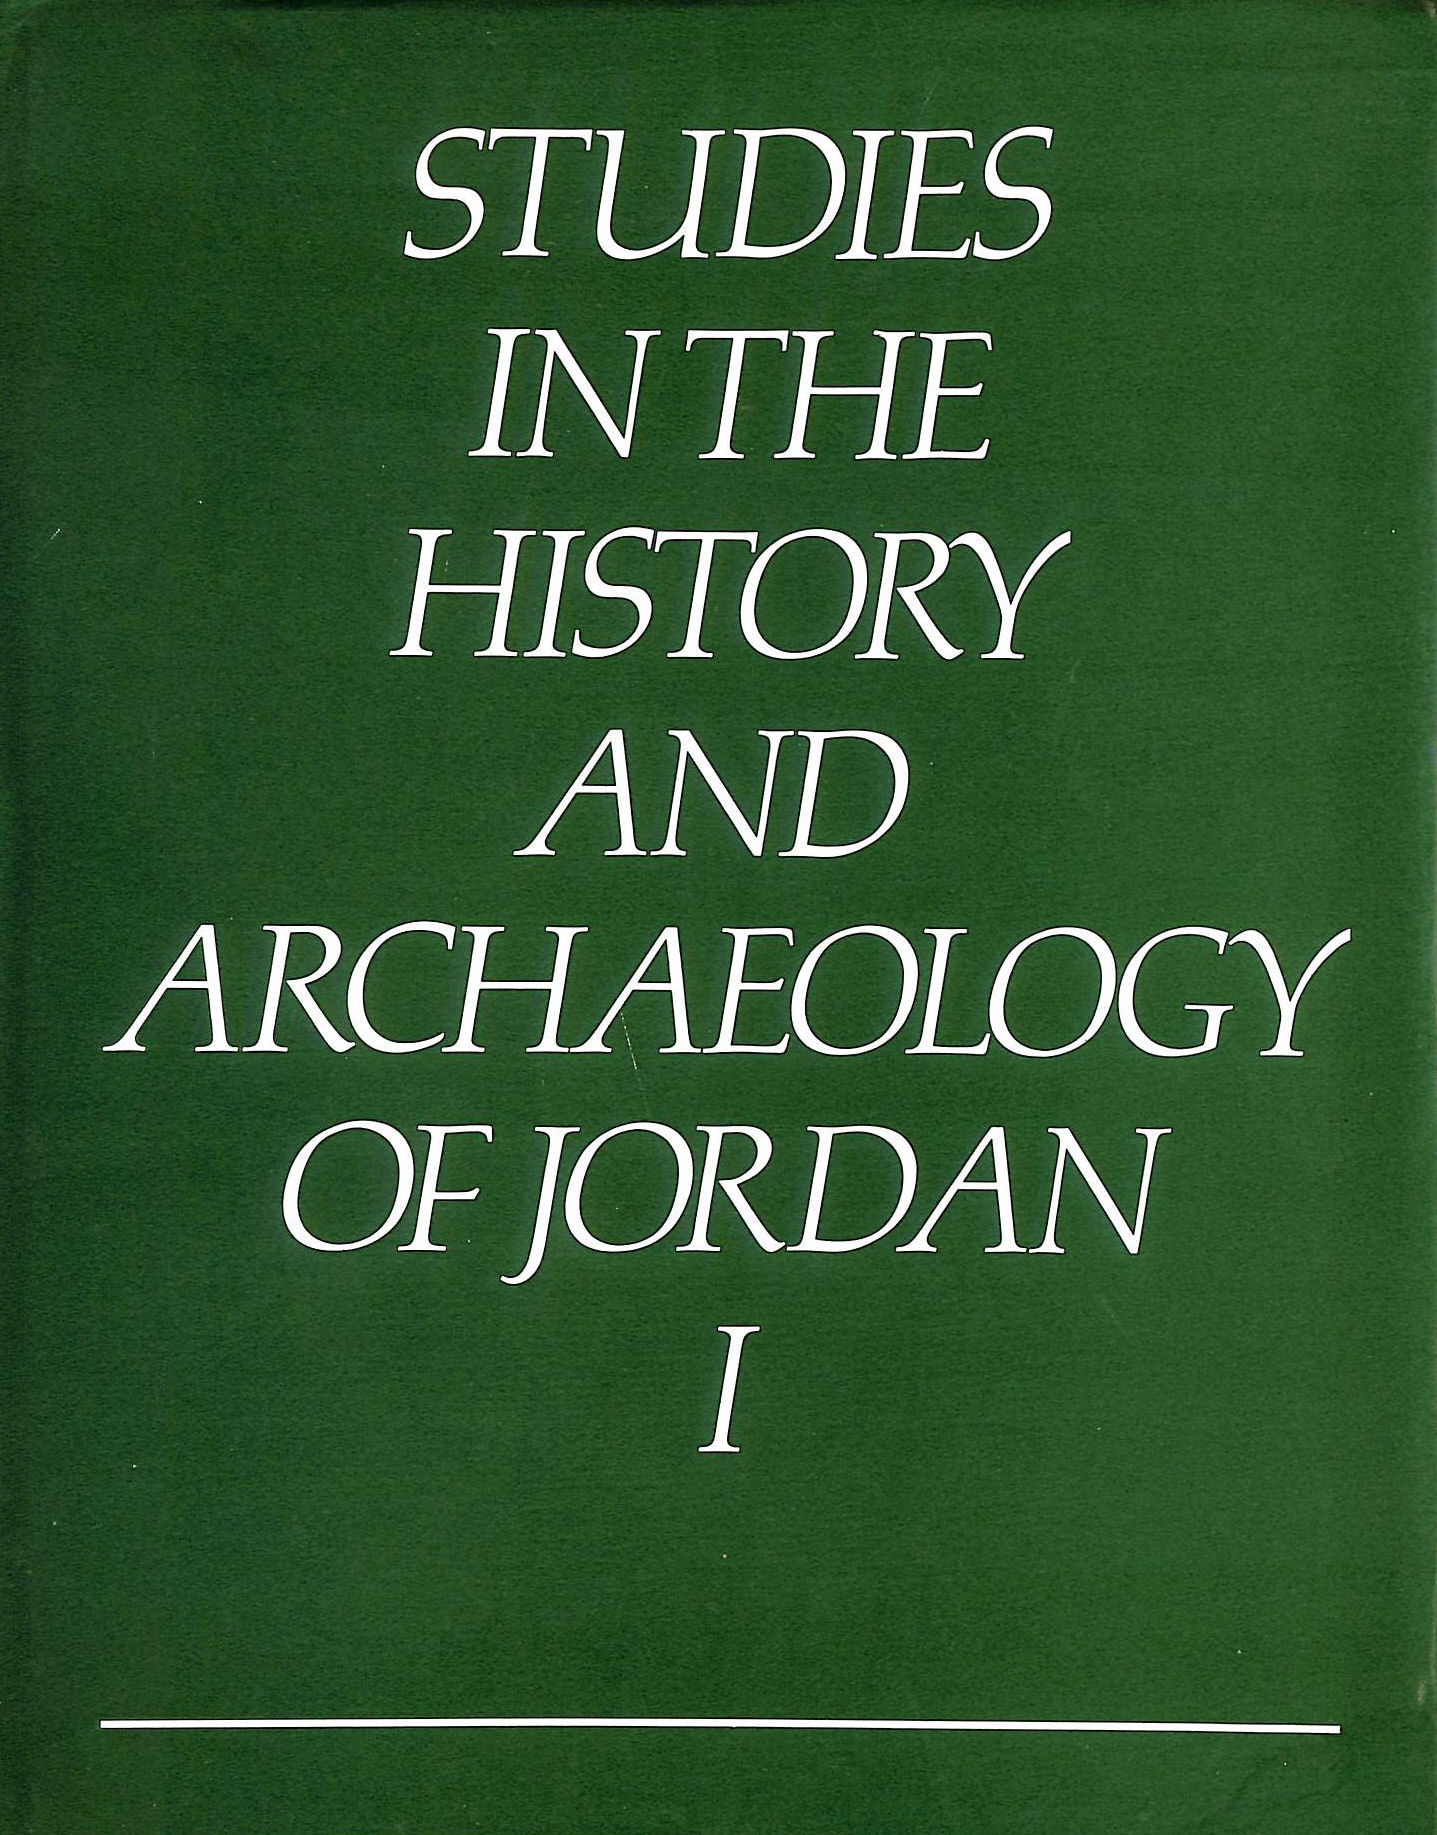 Image for Studies In The History And Archaeology Of Jordan 1